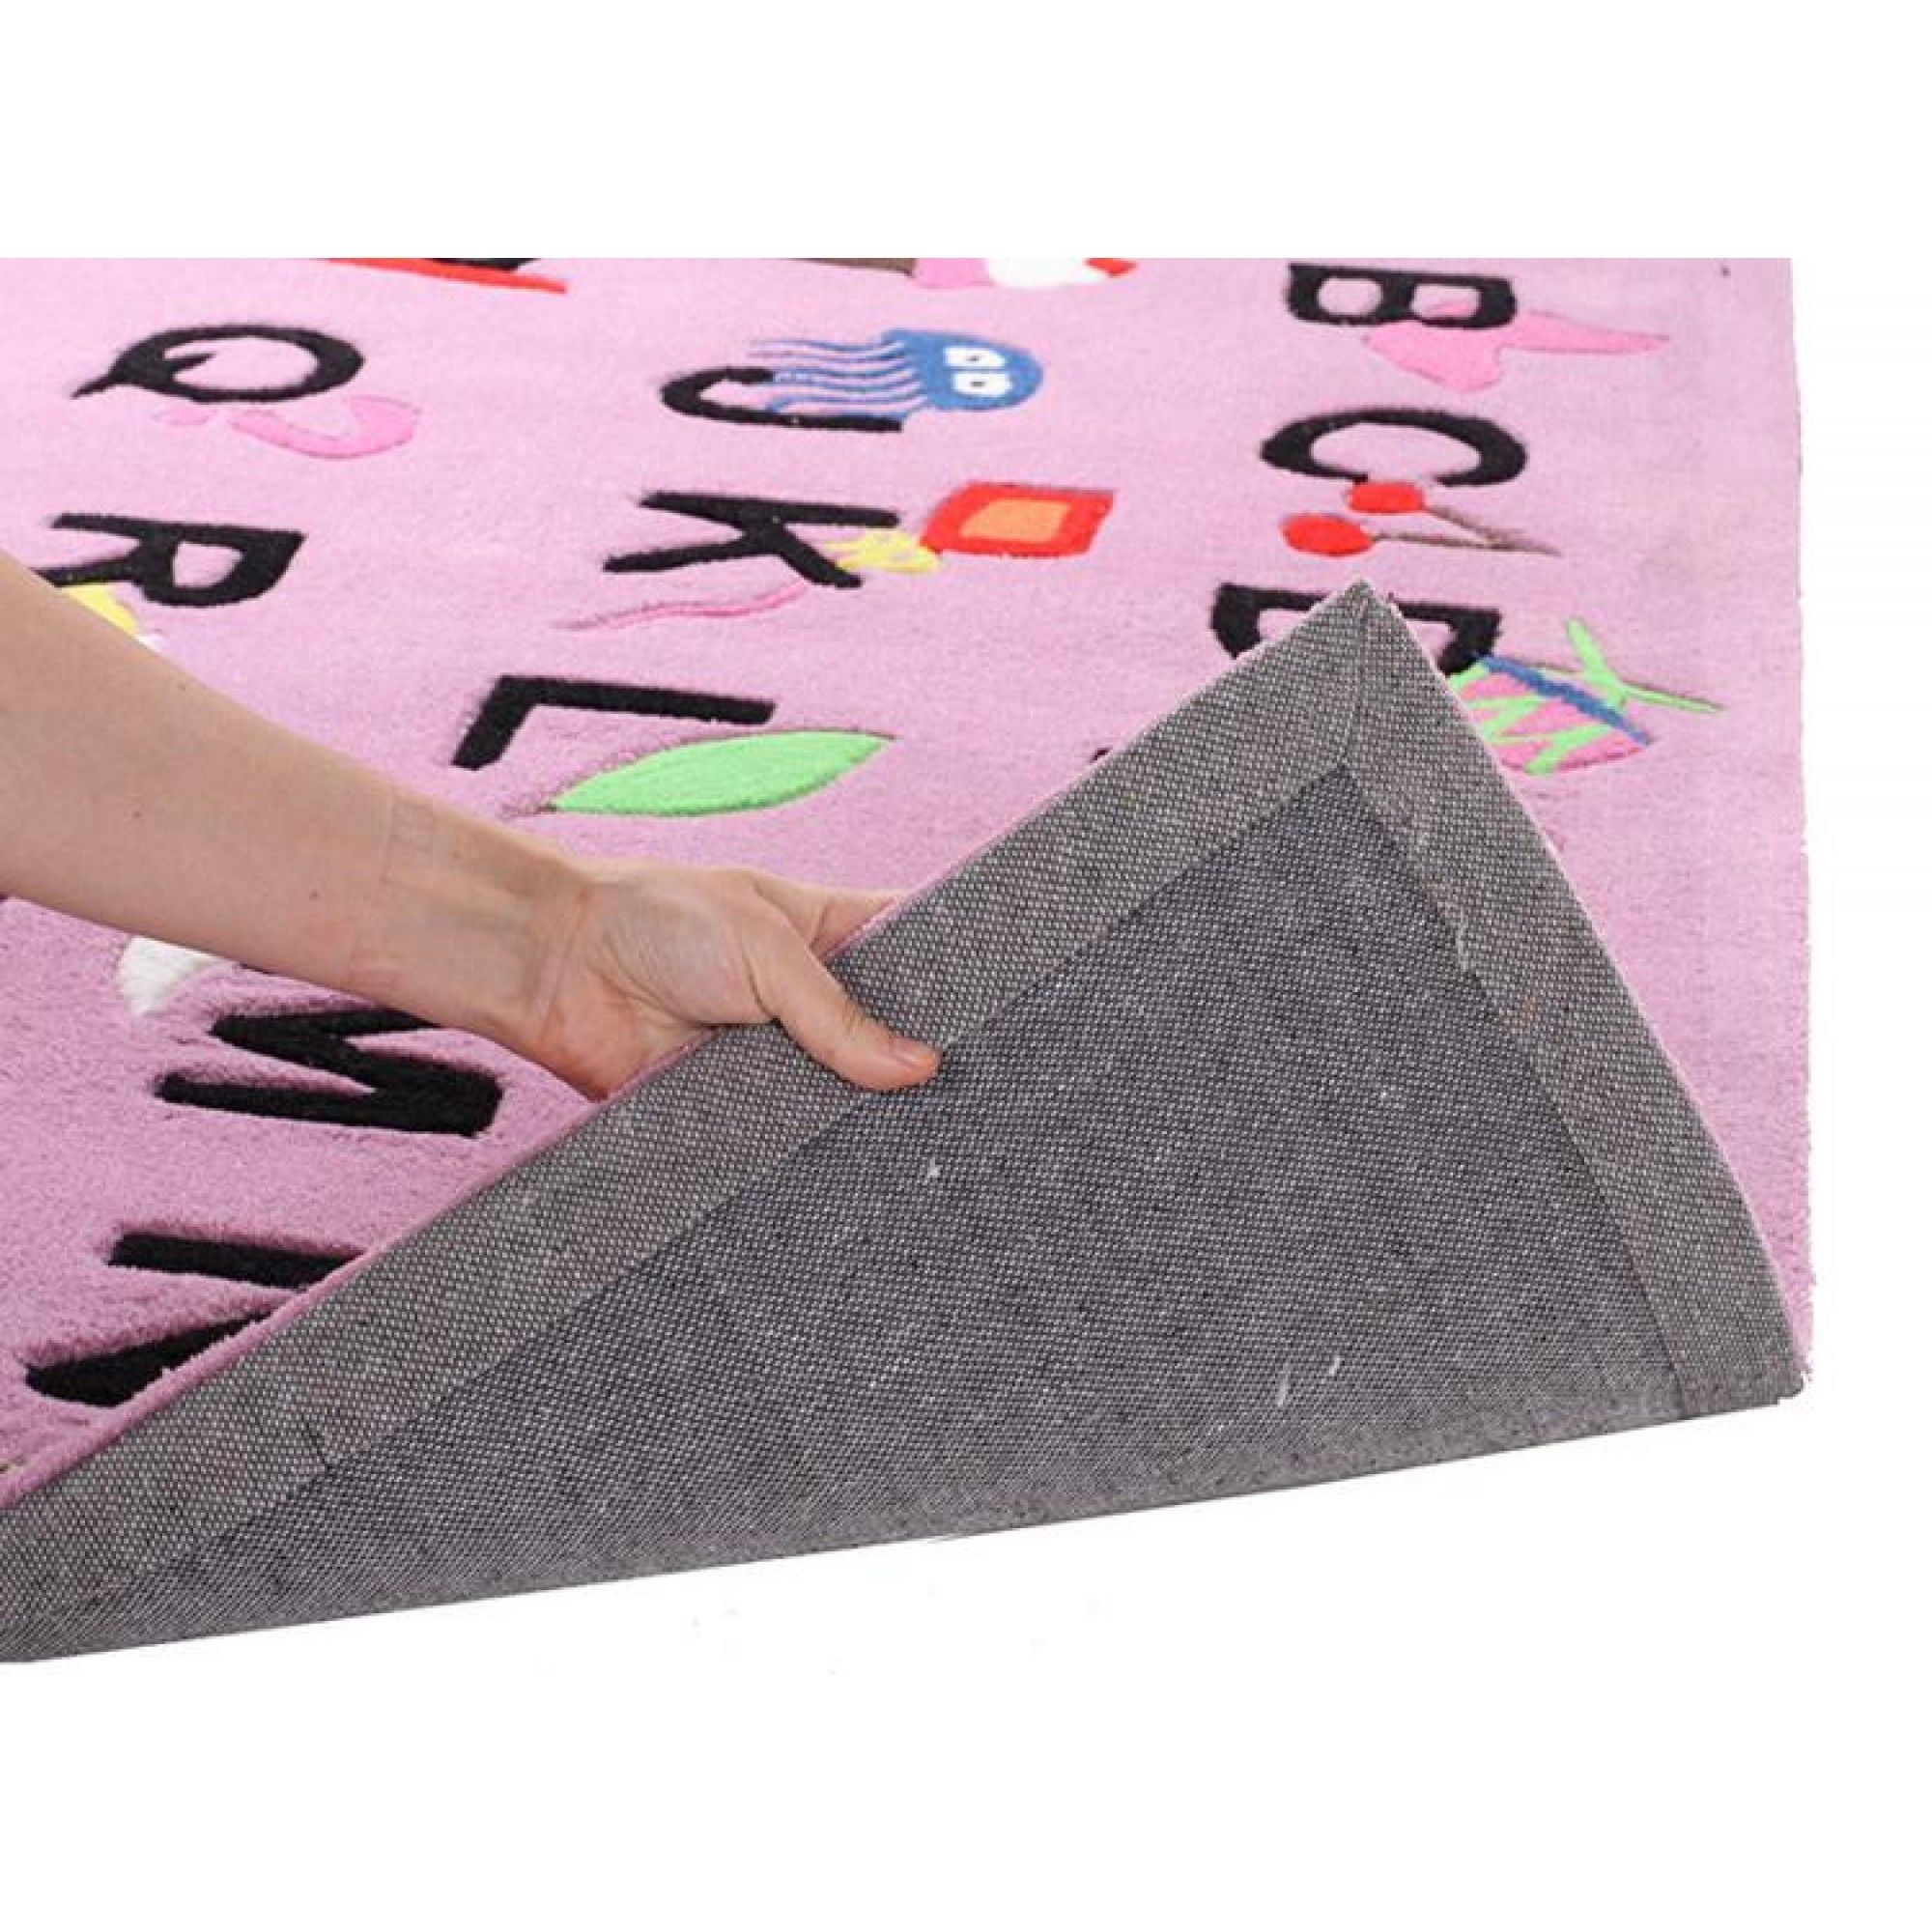 Cool Alphabet Rug Pink Kids Floor Rugs Free Shipping Australia Inside Pink Alphabet Rugs (View 14 of 15)